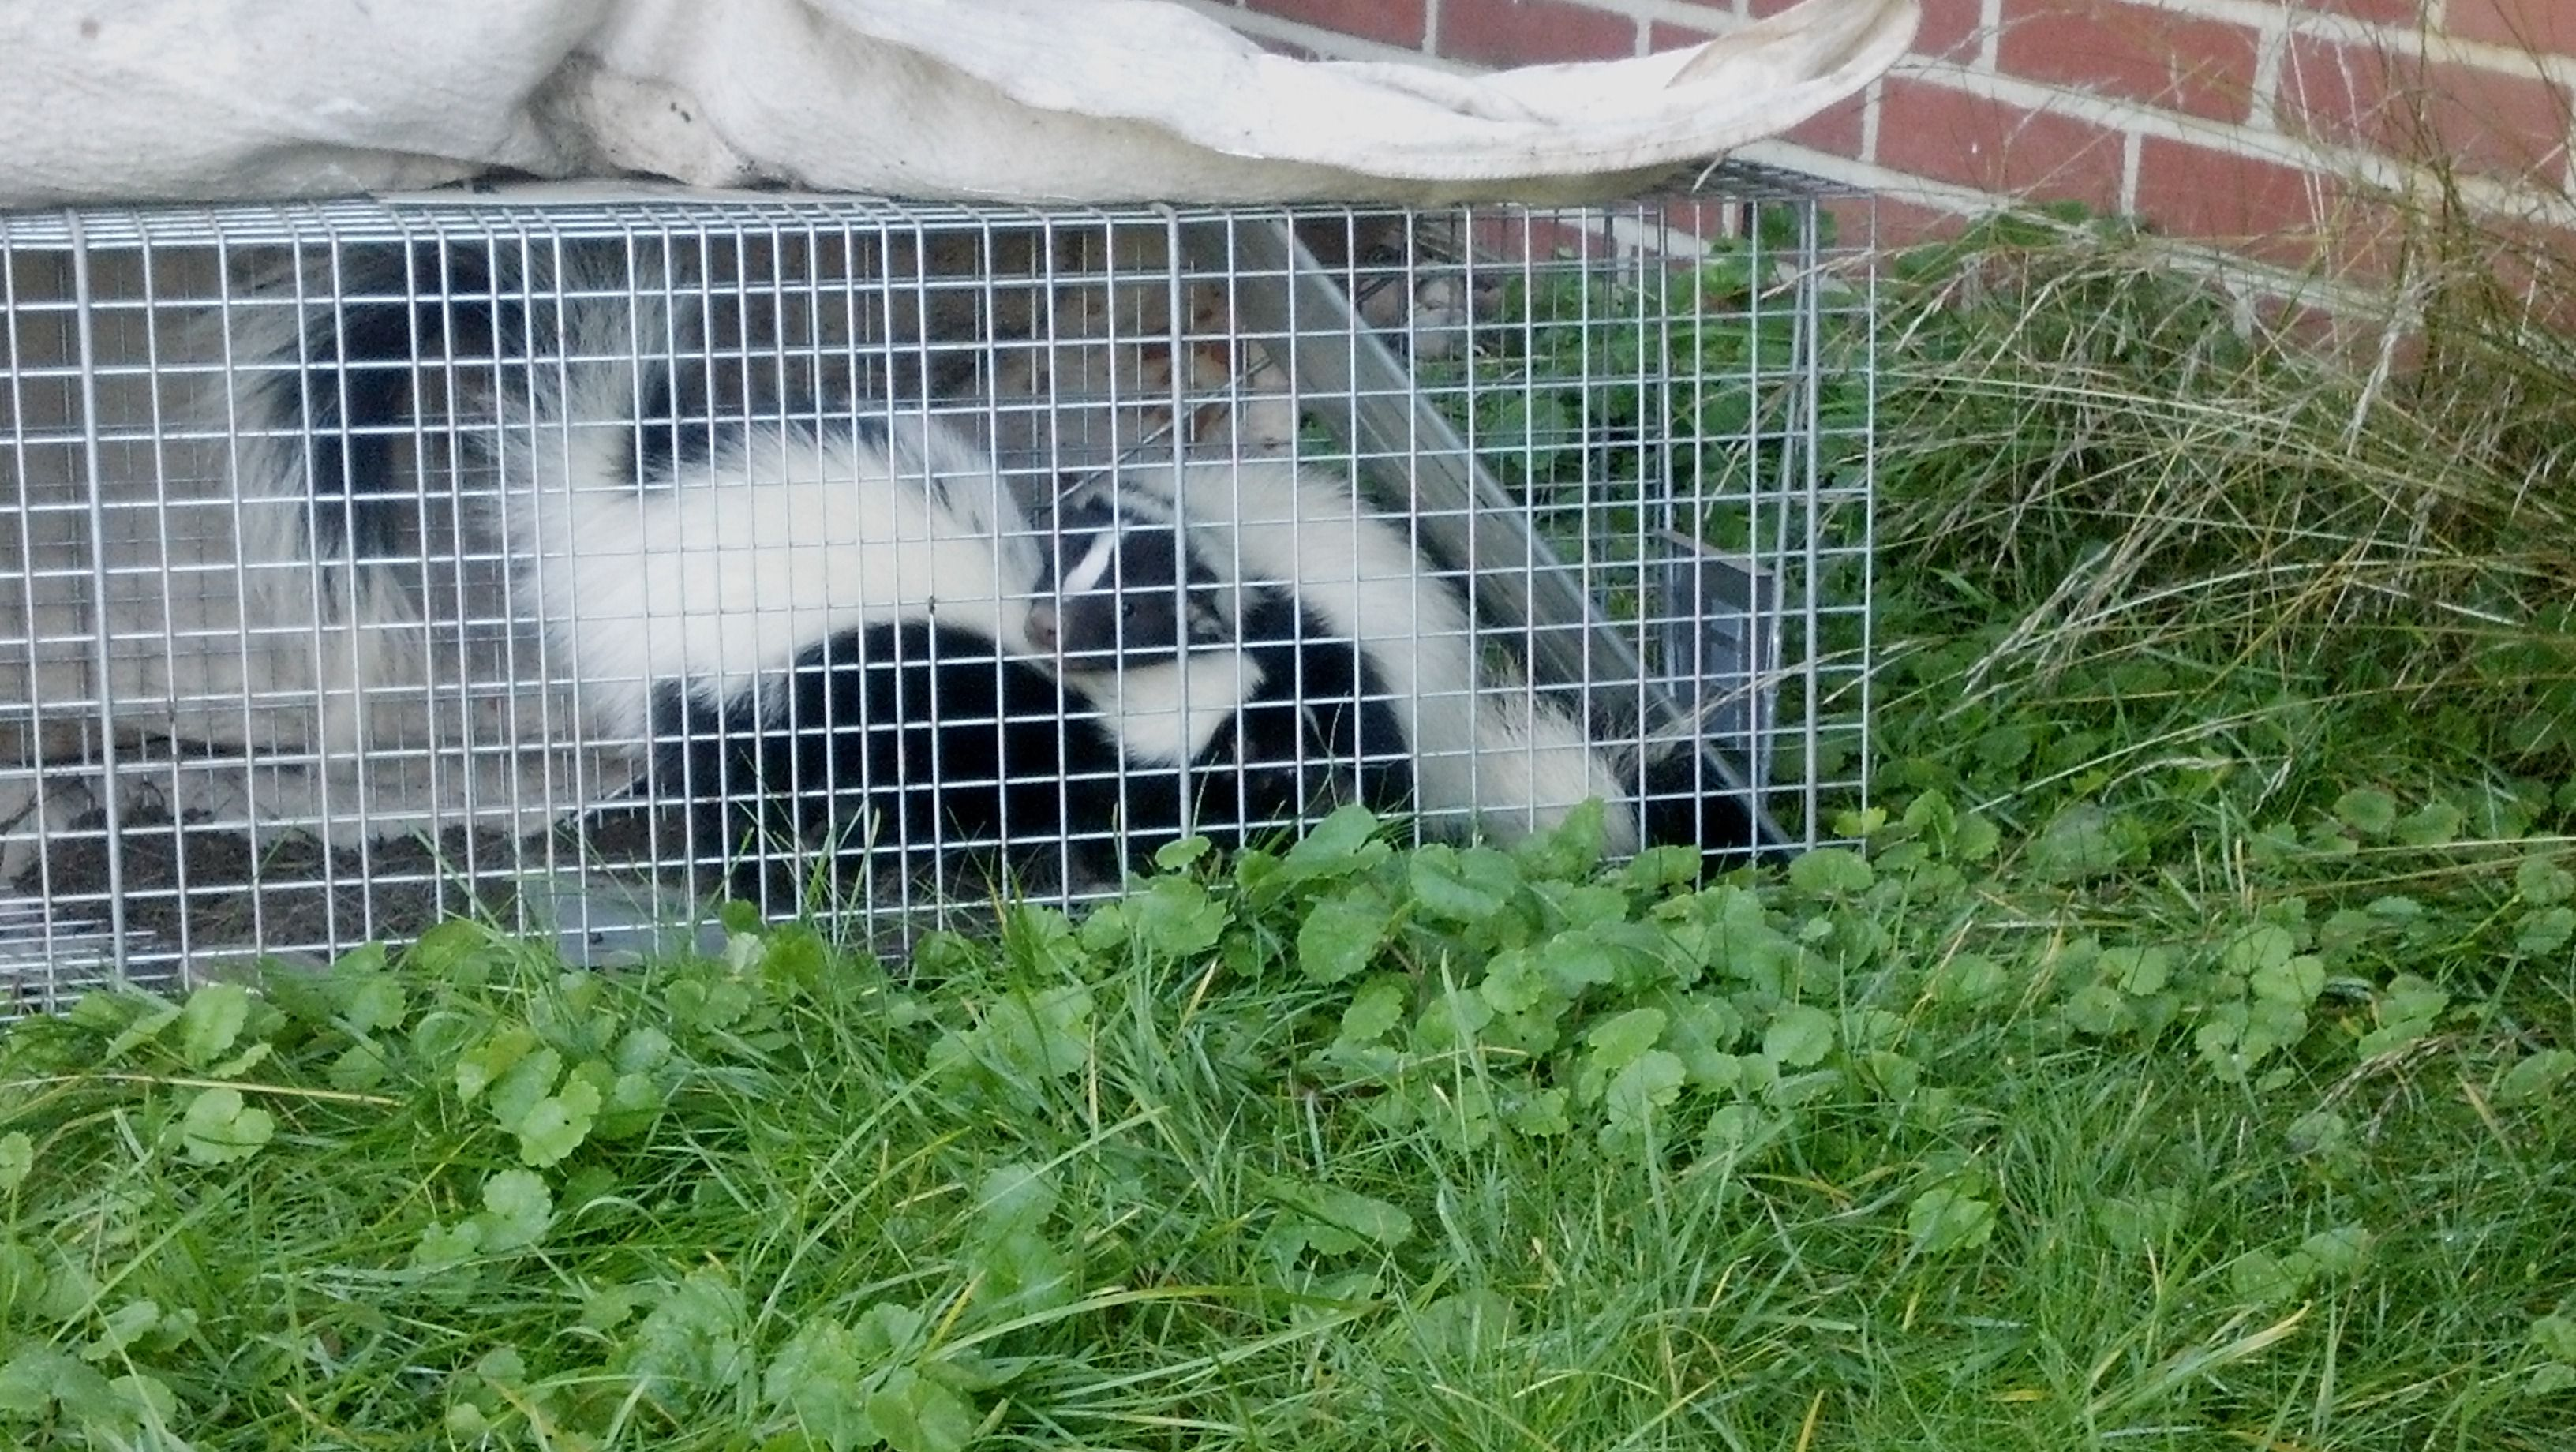 look close see it yep thats two skunks caught in the same trap